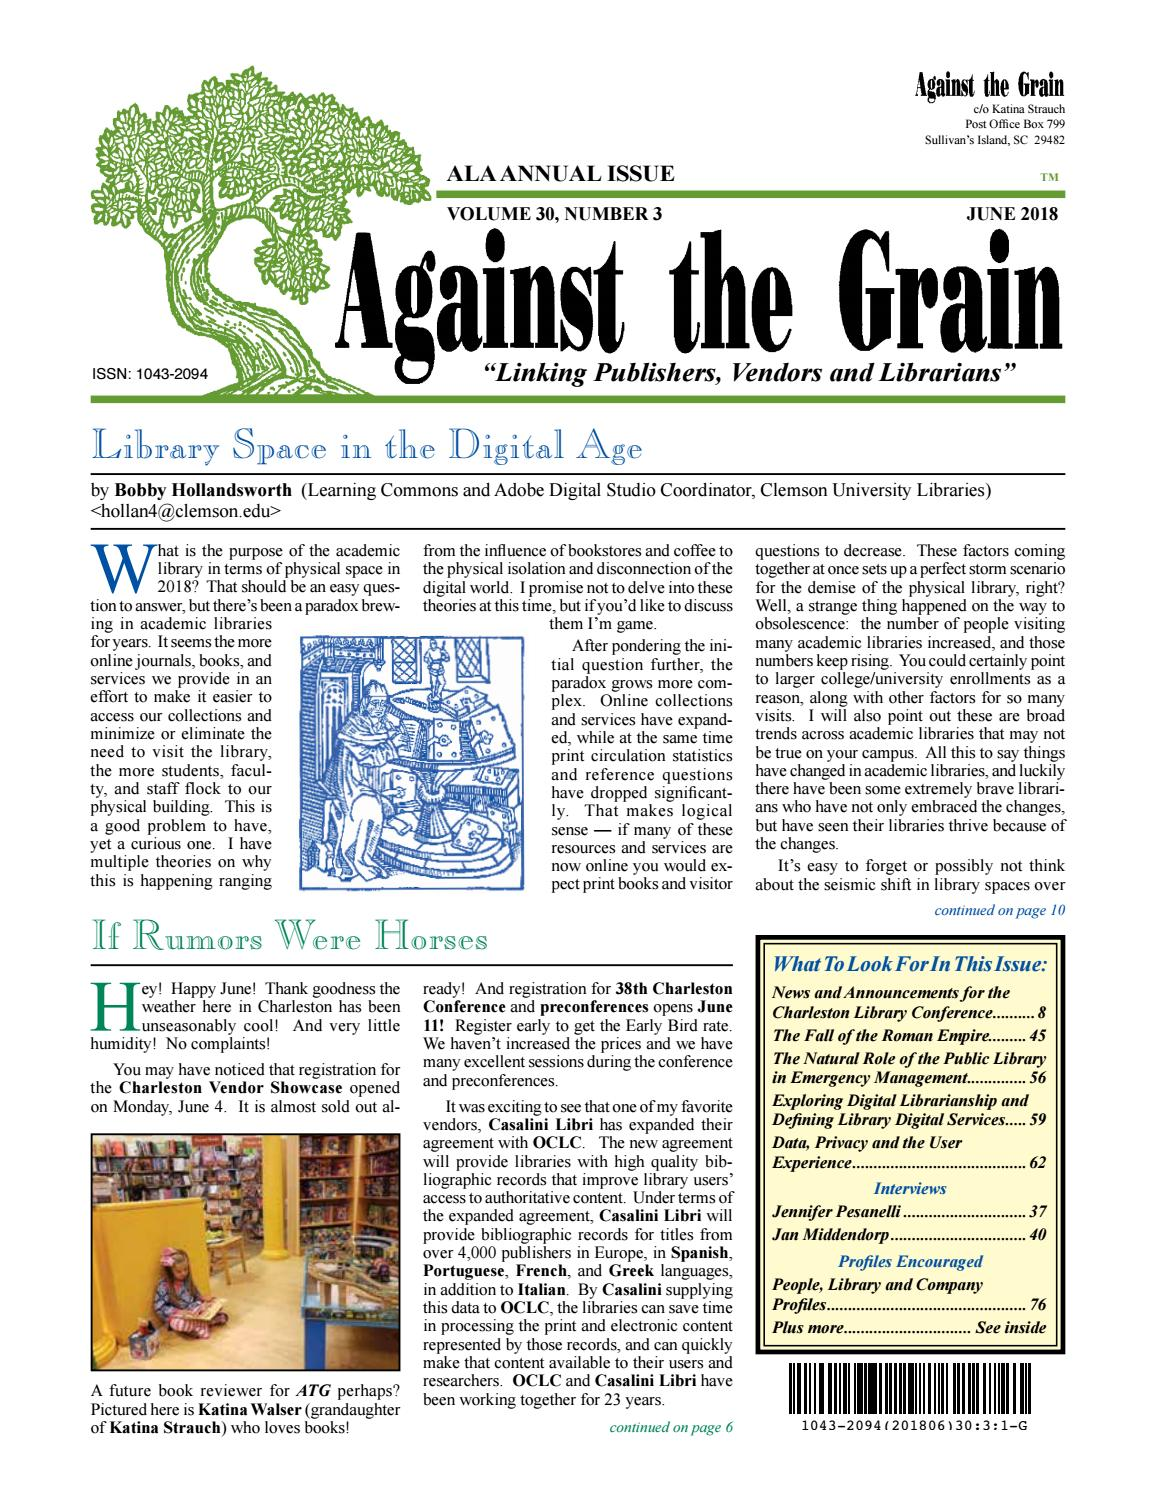 Against the grain v30 3 june 2018 by against the grain issuu fandeluxe Gallery